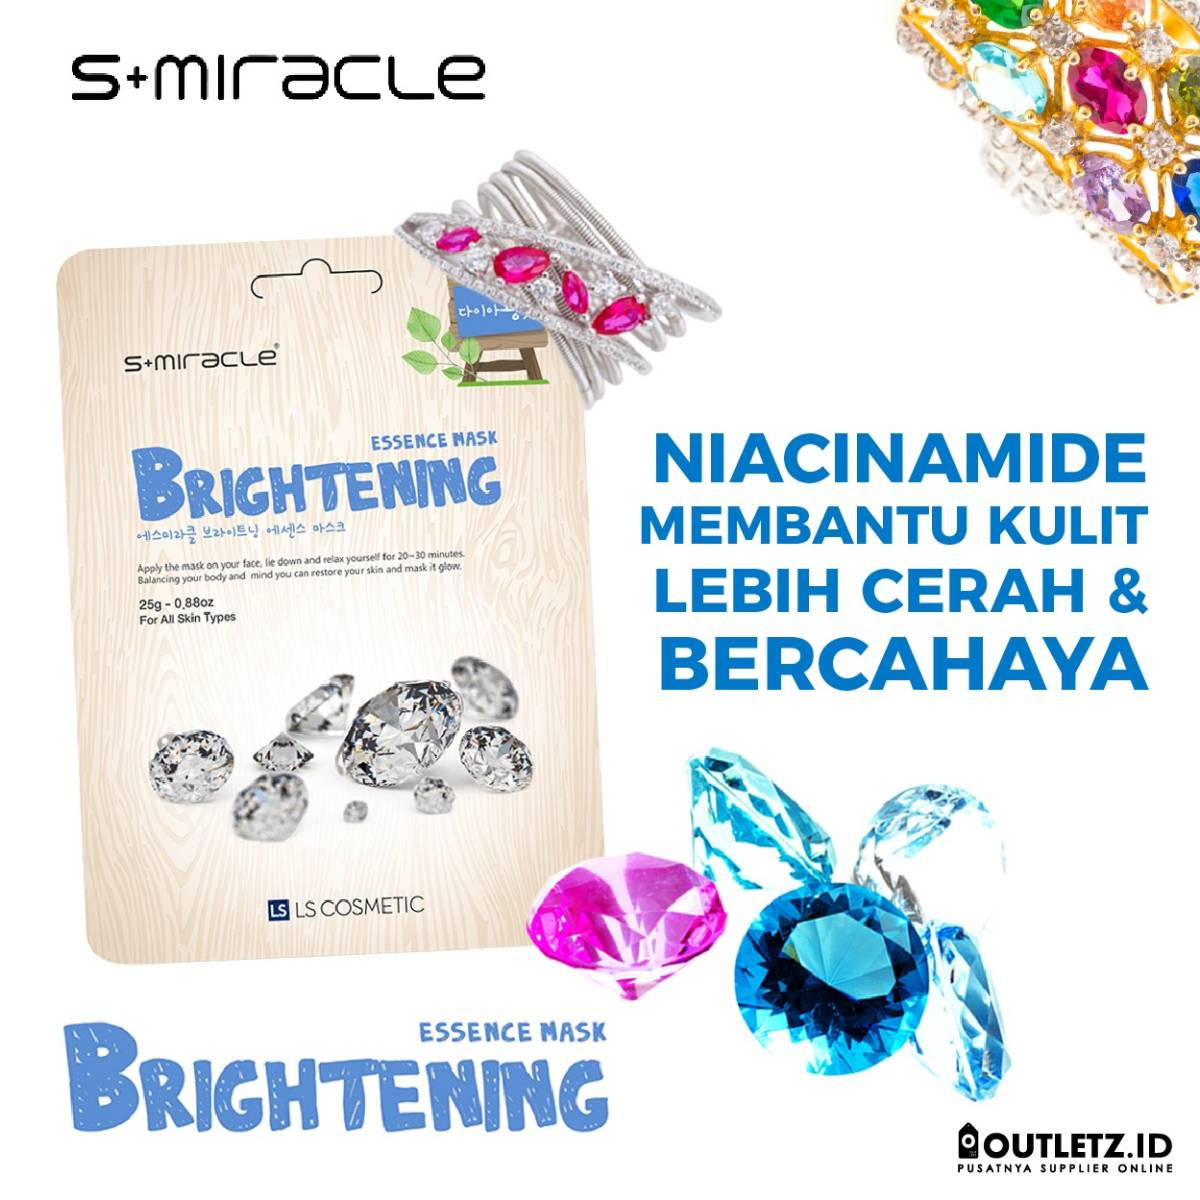 Masker Wajah Korea Brightening - S+miracle Brightening Essence Mask0